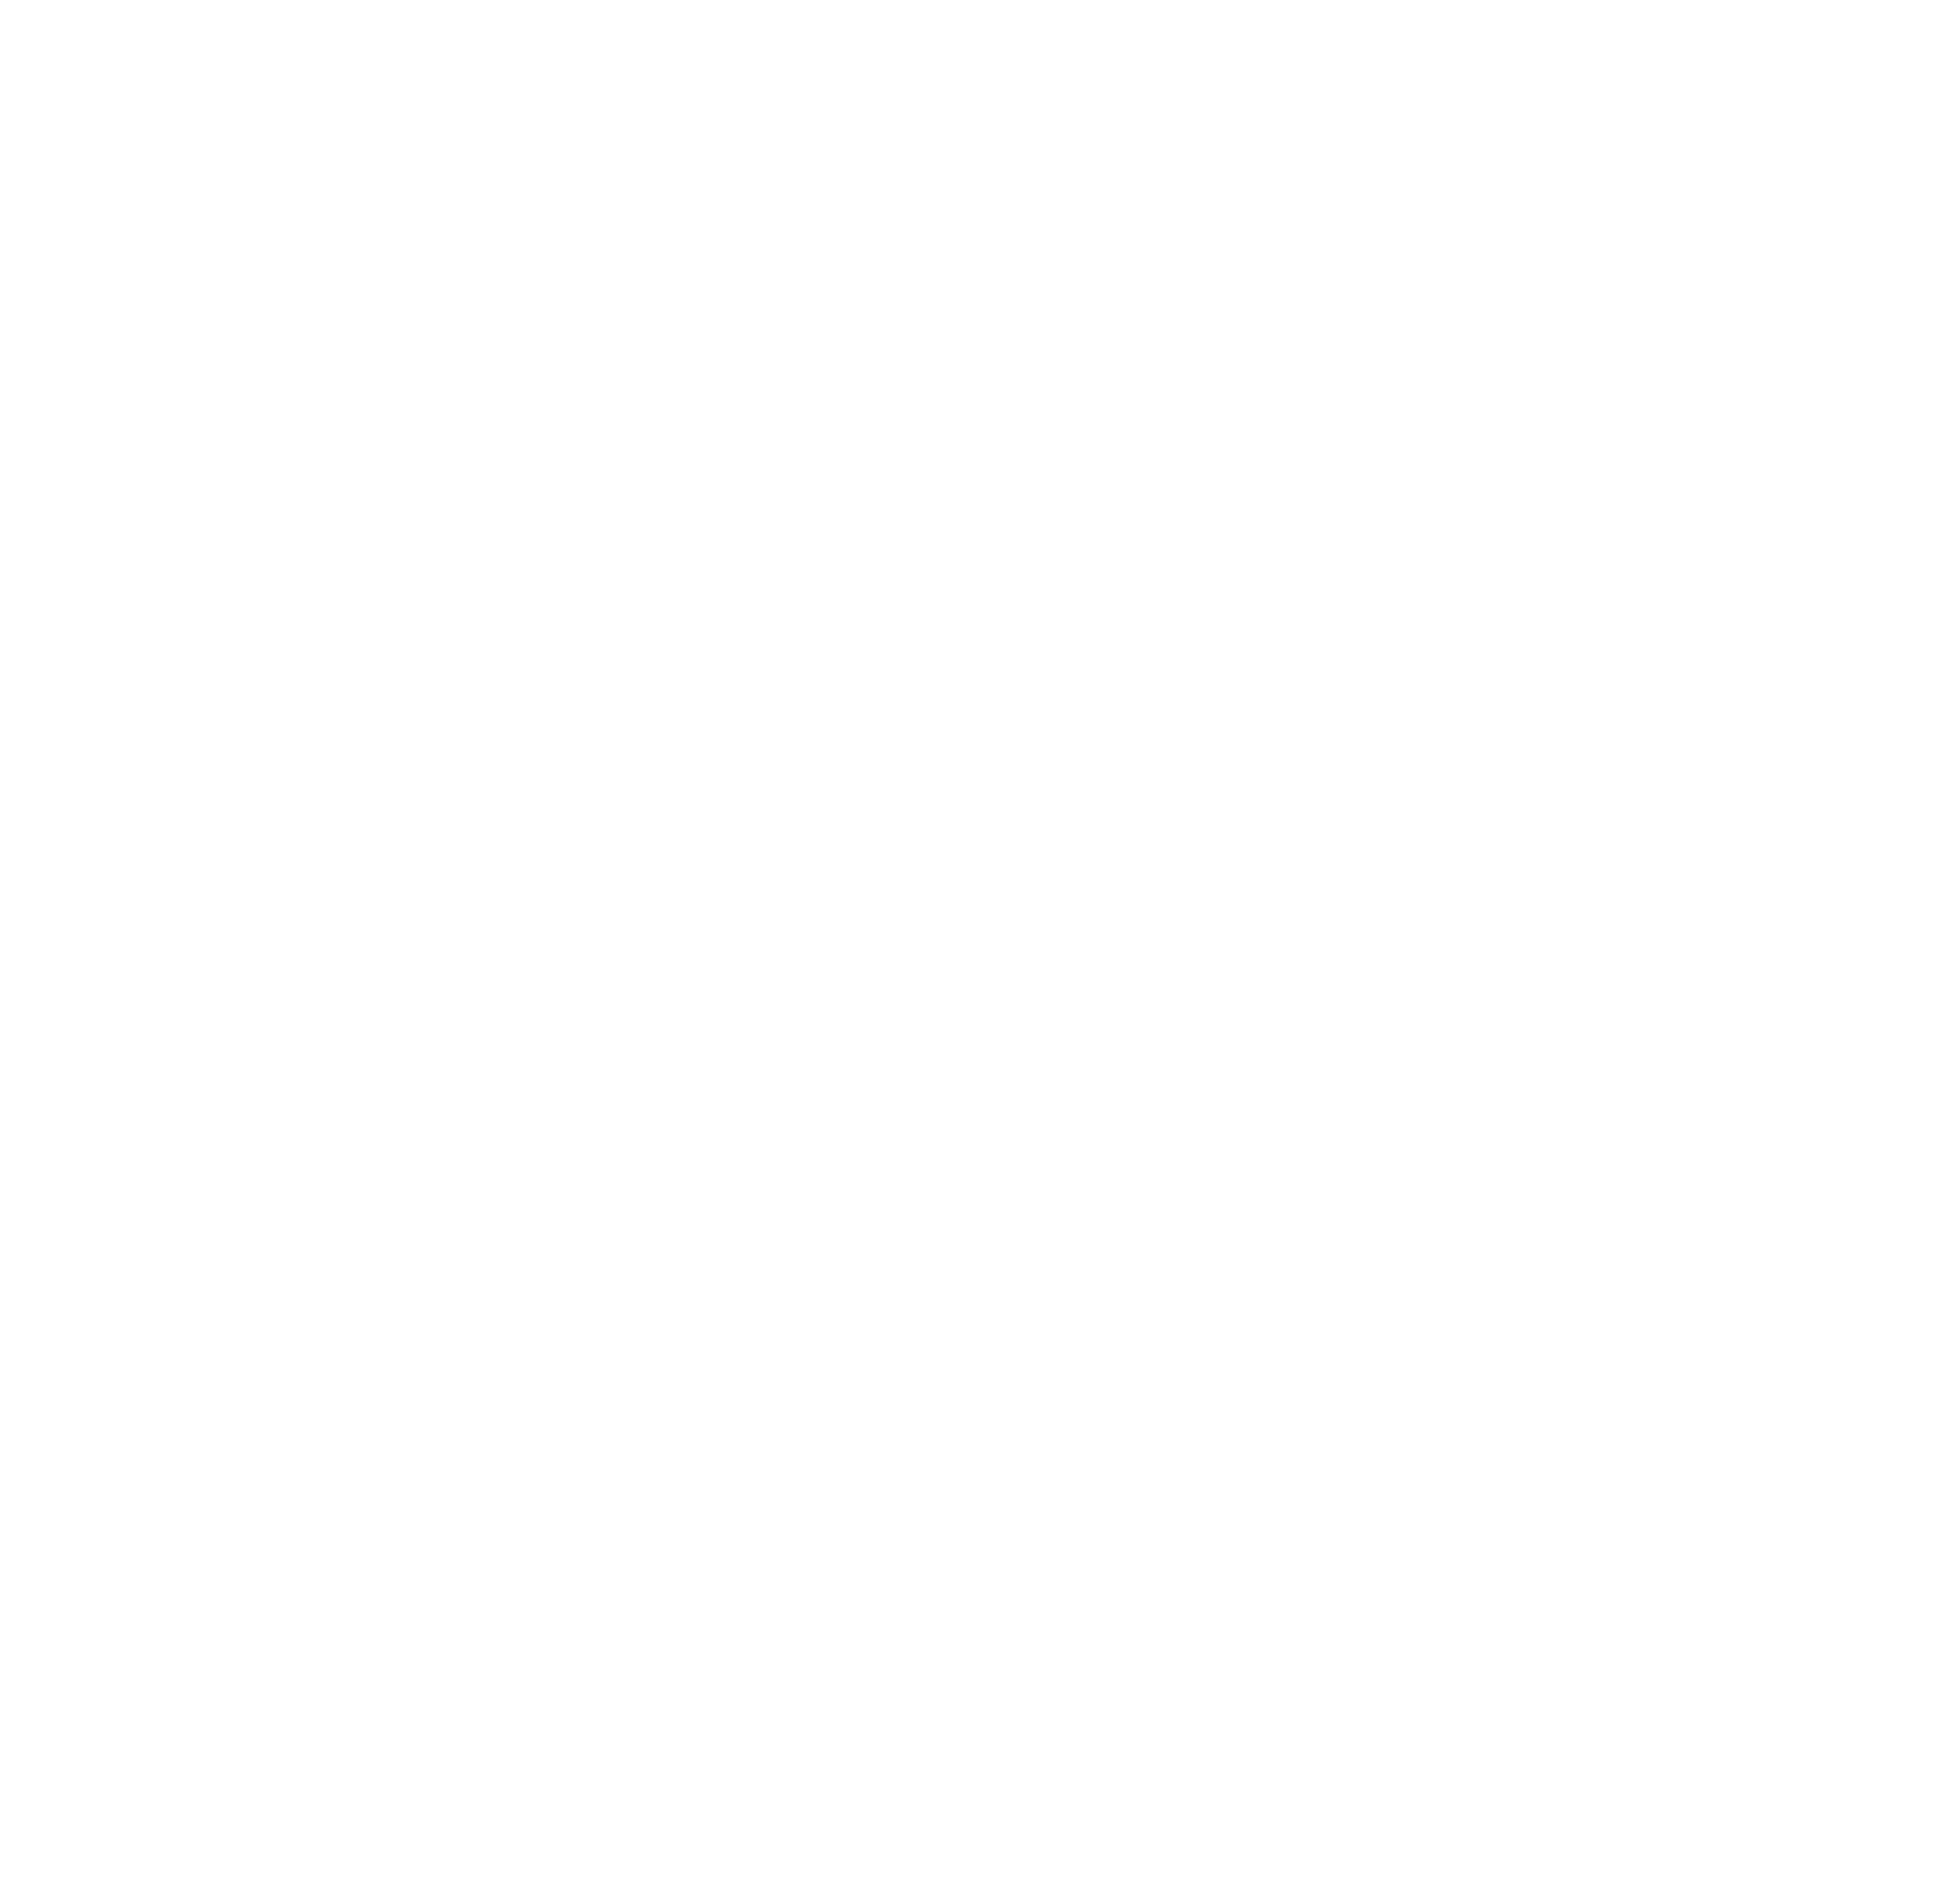 VGS Online